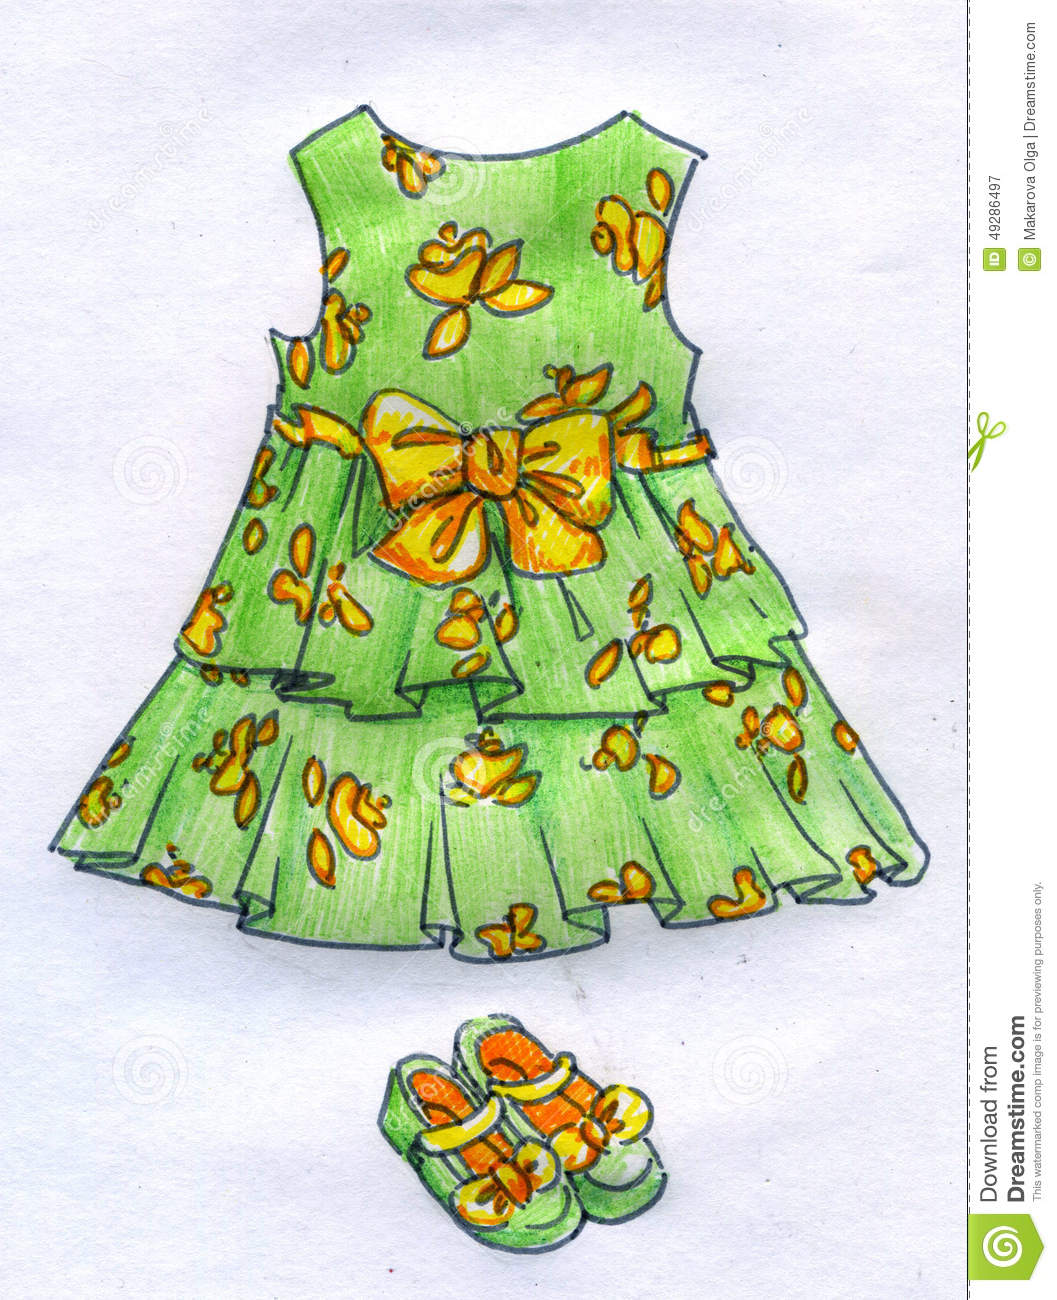 3687b07f793 Hand drawn colored pencil sketch of a green dress and shoes for a little  girl. The dress is of simple design, has flowery pattern and big yellow  ribbon with ...